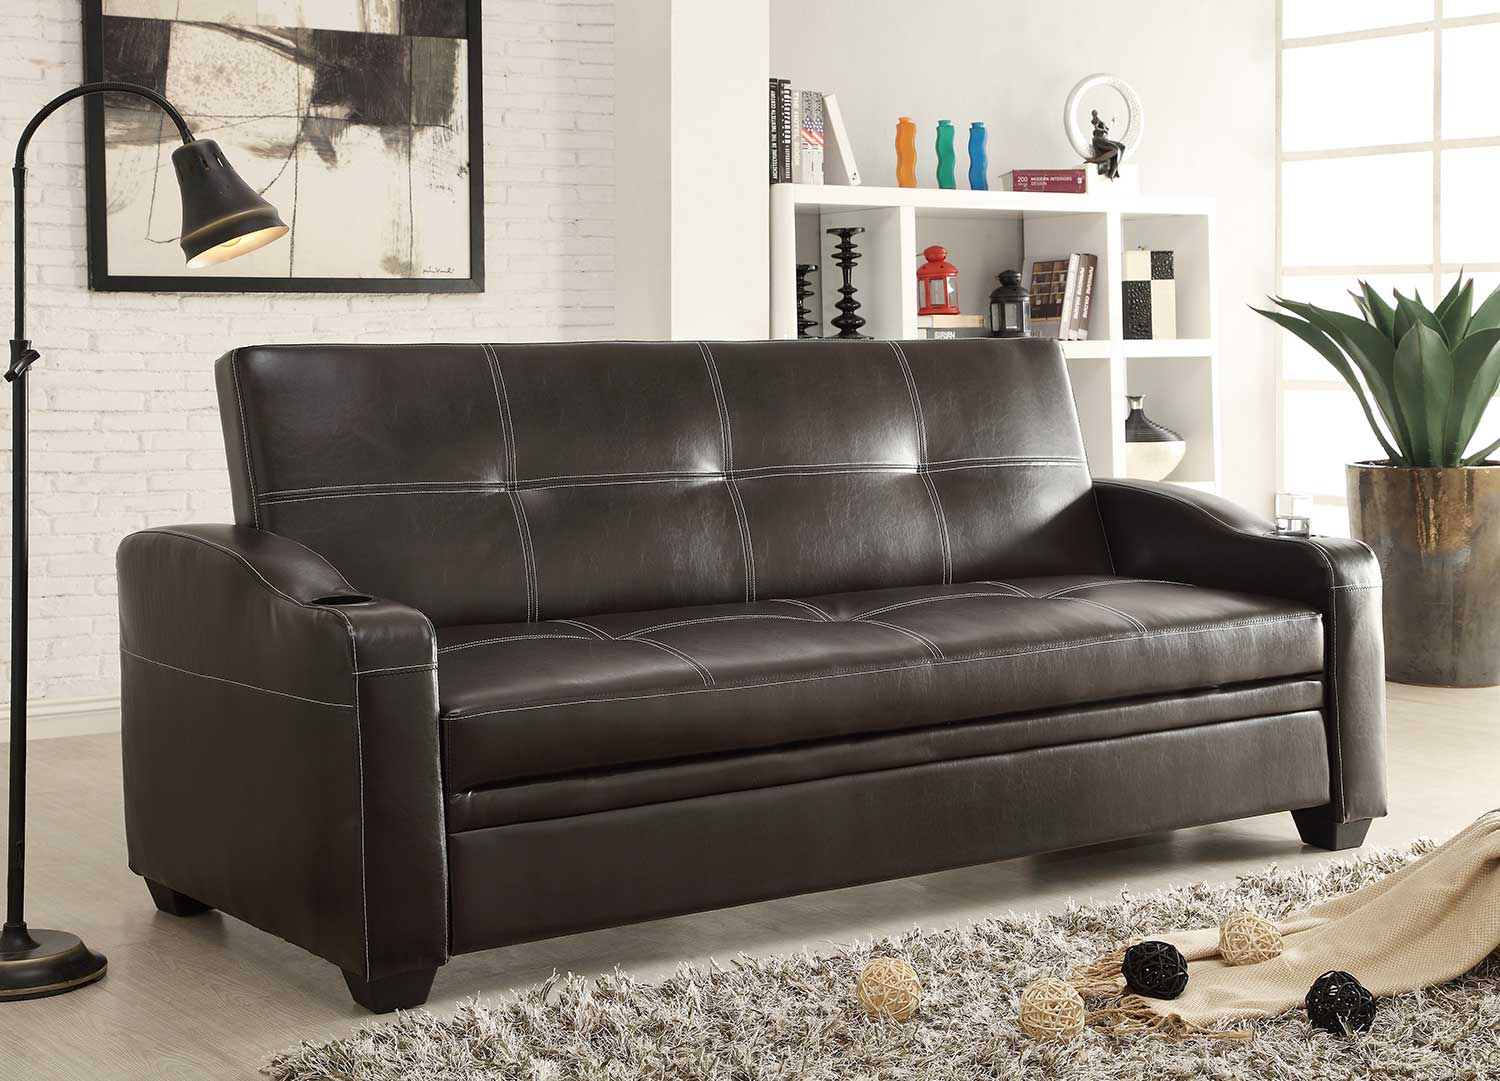 Homelegance Caffrey Elegant Lounger Sofa Bed Dark Brown